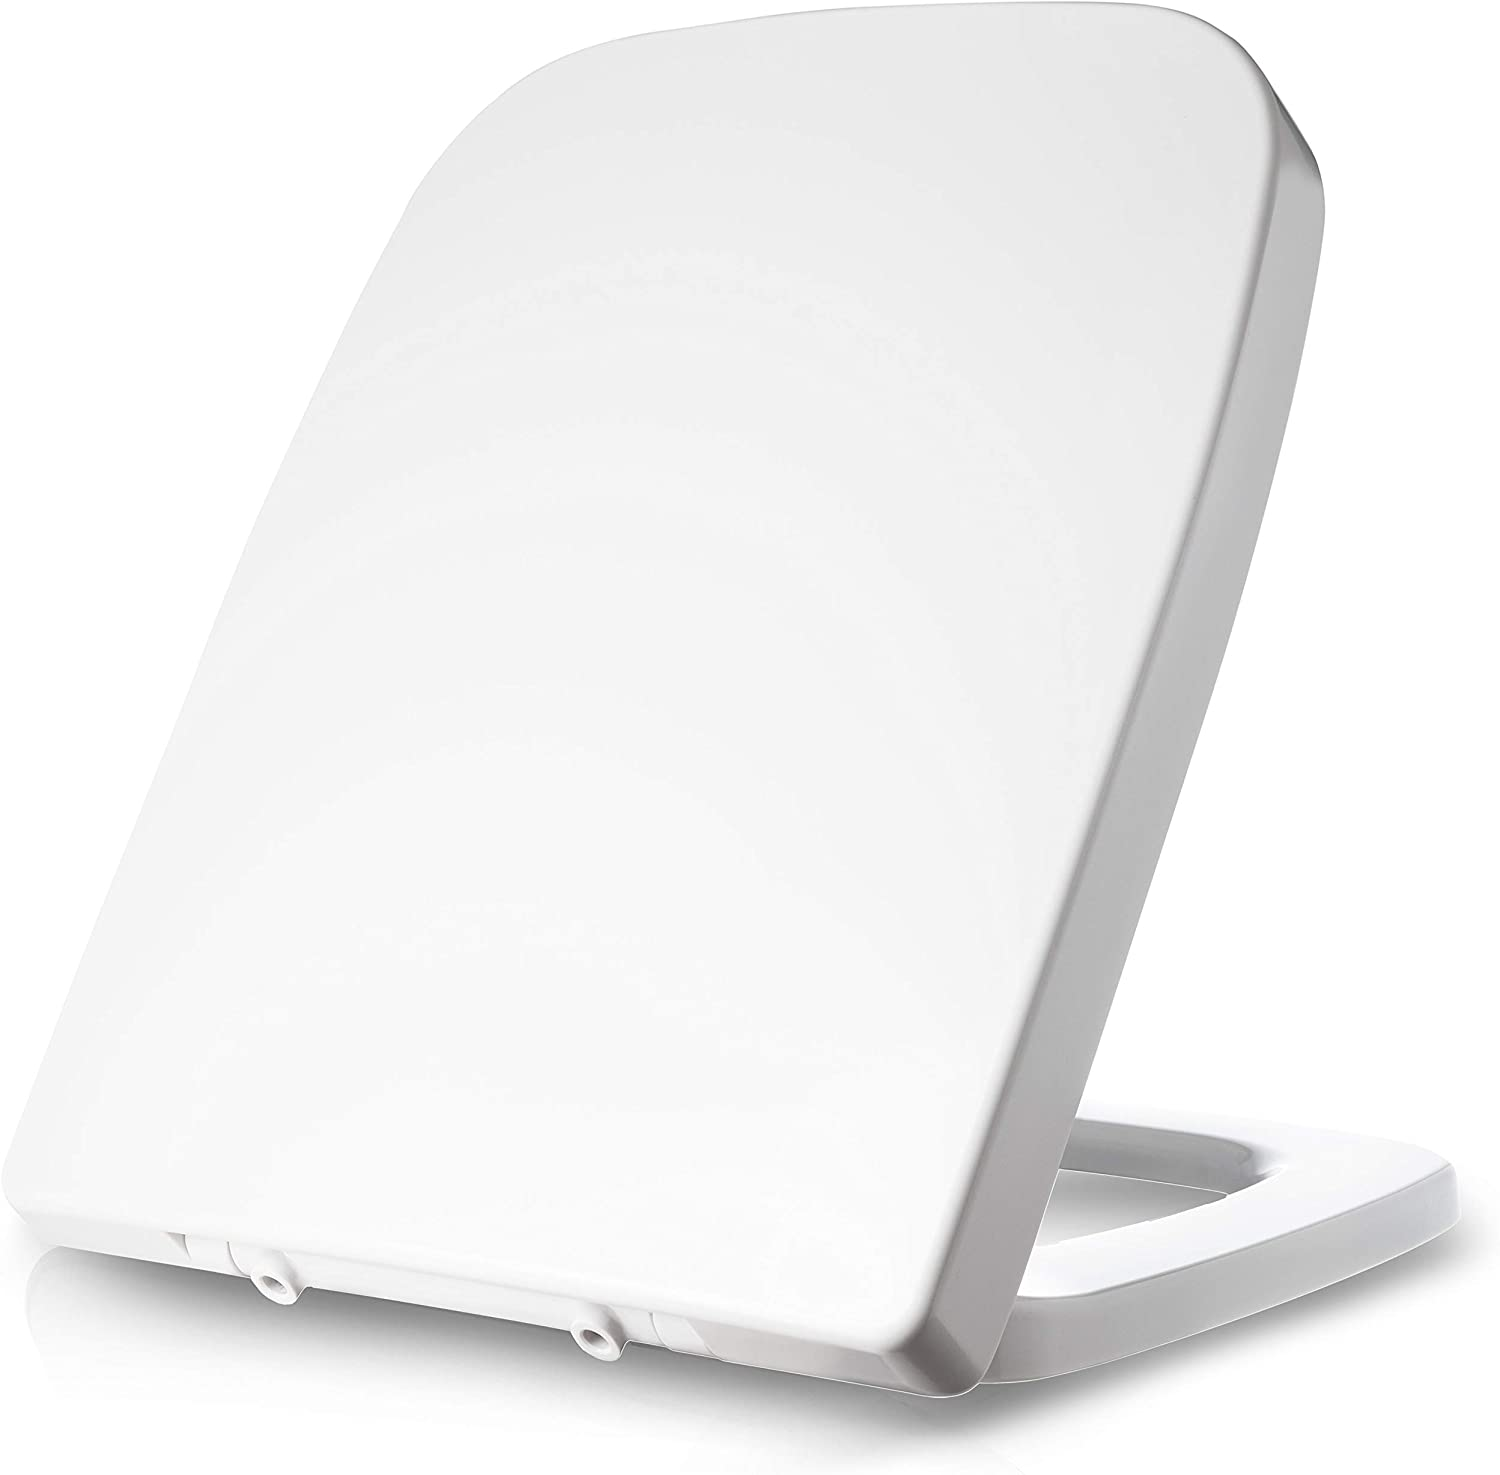 Dombach Lamera Square Toilet Seat White Suitable for Keramag Renova No. 1 Plan with Soft Close Toilet Lid Removable Stainless Steel Hinge Quick Release Function